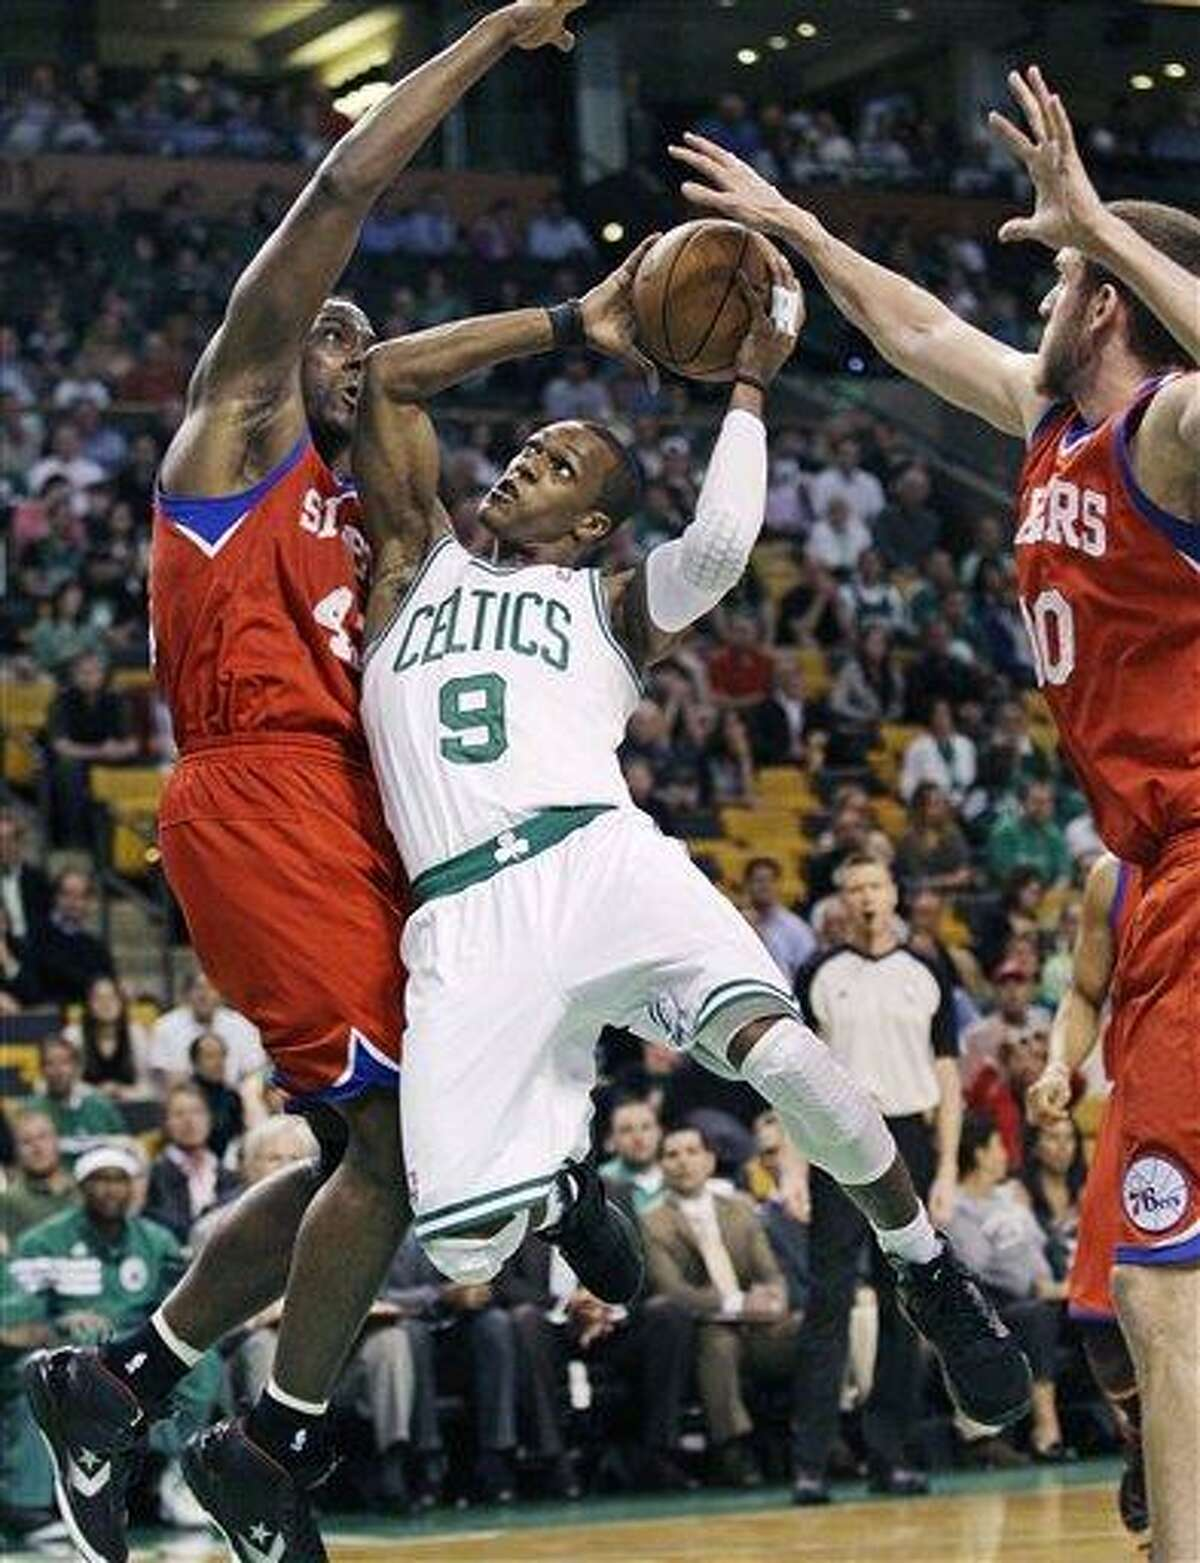 Boston Celtics guard Rajon Rondo (9) is double teamed by Philadelphia 76ers defenders Elton Brand, left, and Spencer Hawes on a drive to the basket during the first quarter of Game 5 in their NBA basketball Eastern Conference semifinal playoff series in Boston, Monday, May 21, 2012. (AP Photo/Charles Krupa)